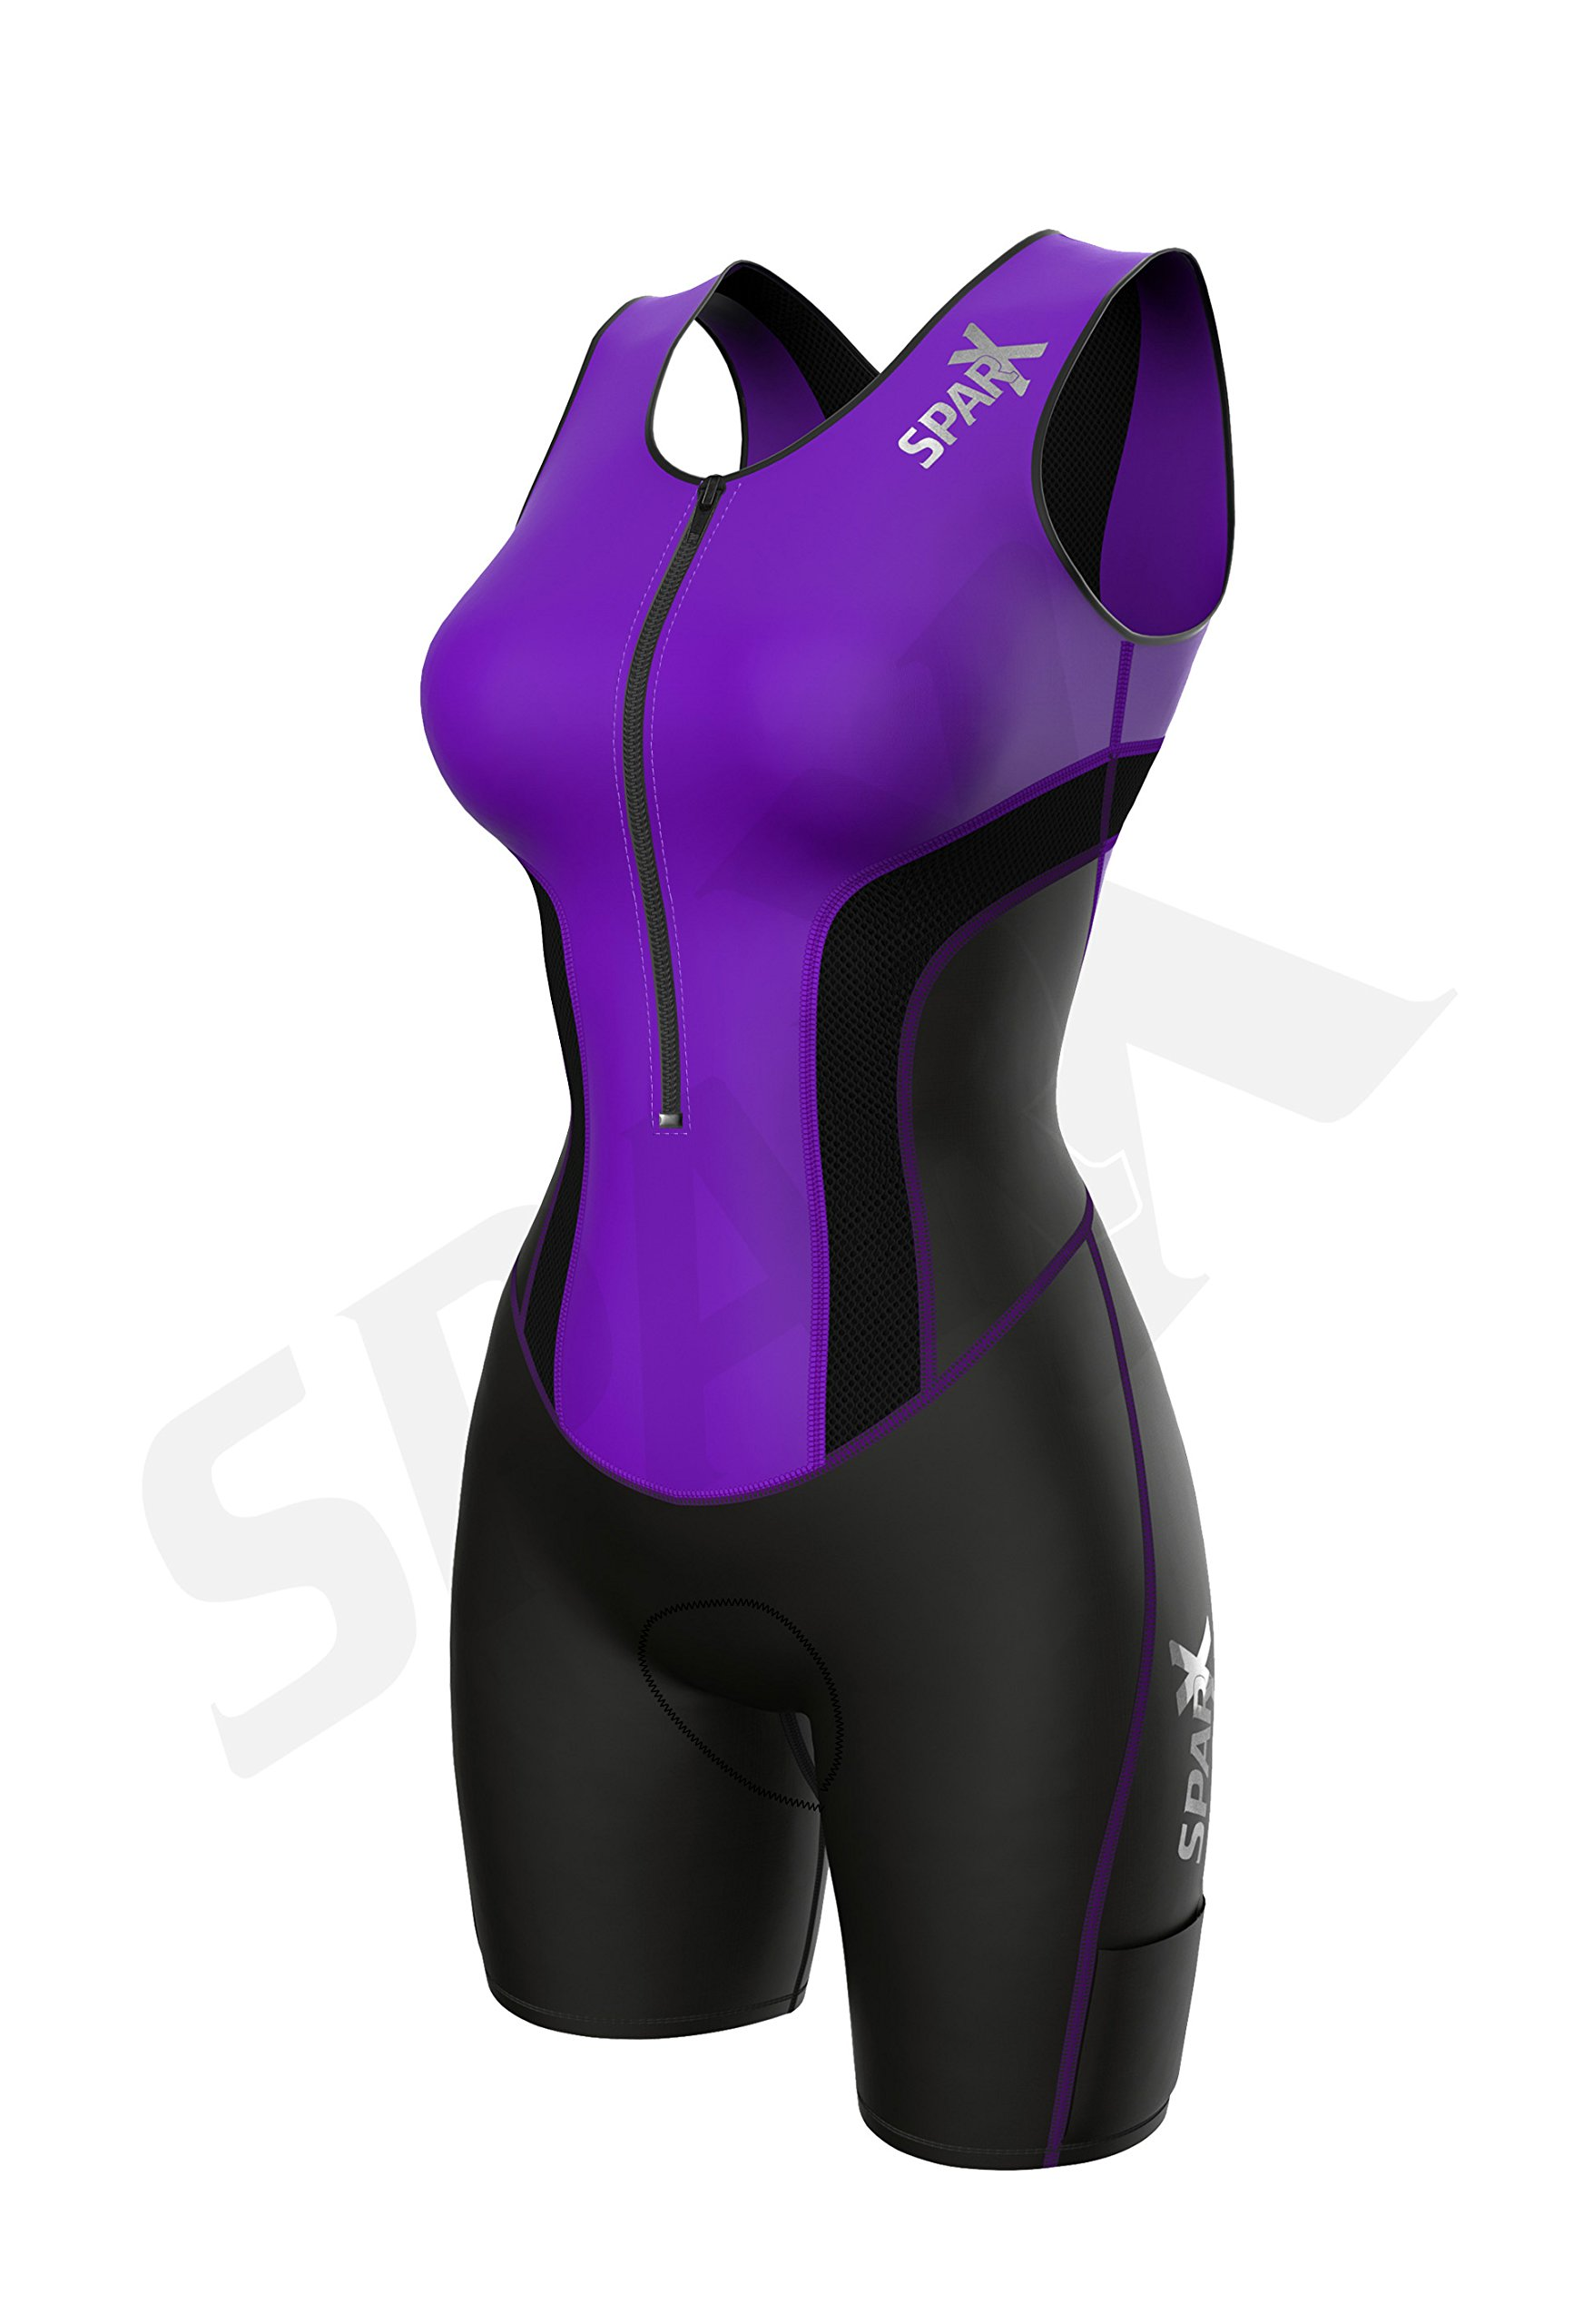 Sparx Women Triathlon Suit Tri Short Racing Cycling Swim Run (Small, Purple) by Sparx Sports (Image #2)